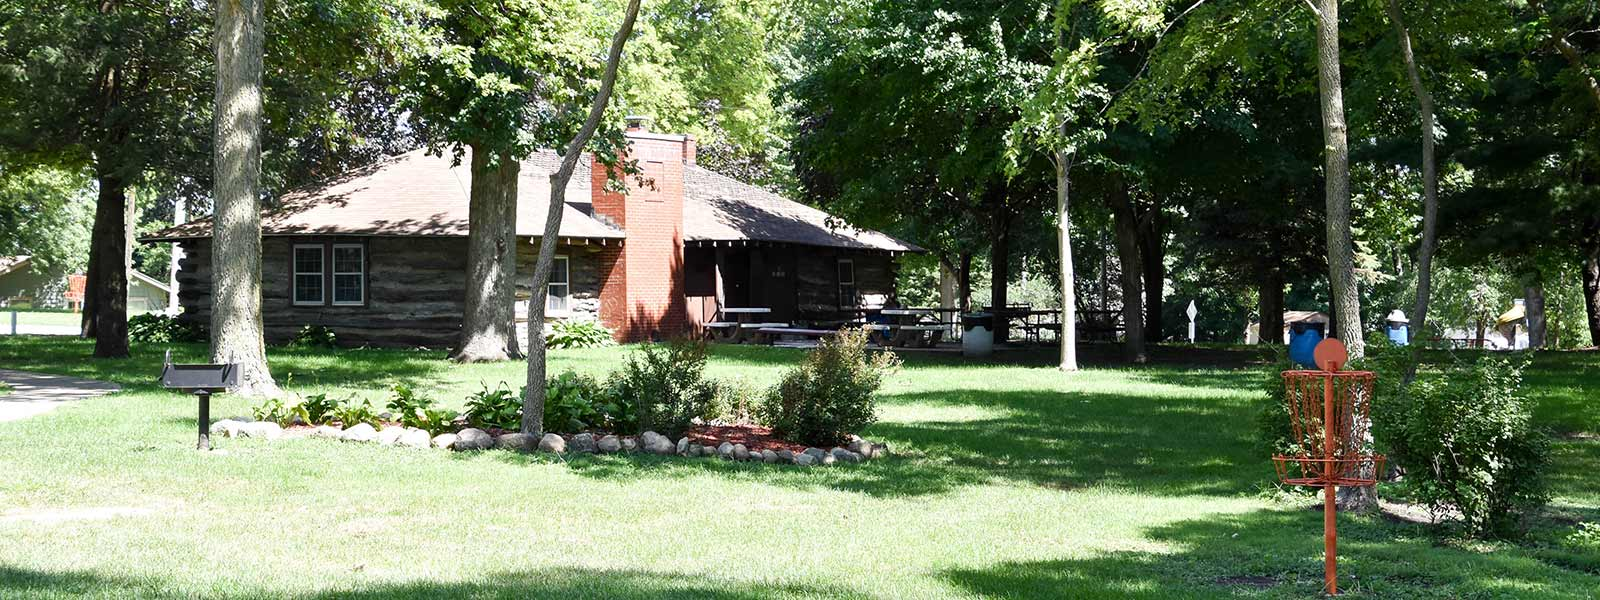 Edgewood Log Cabin